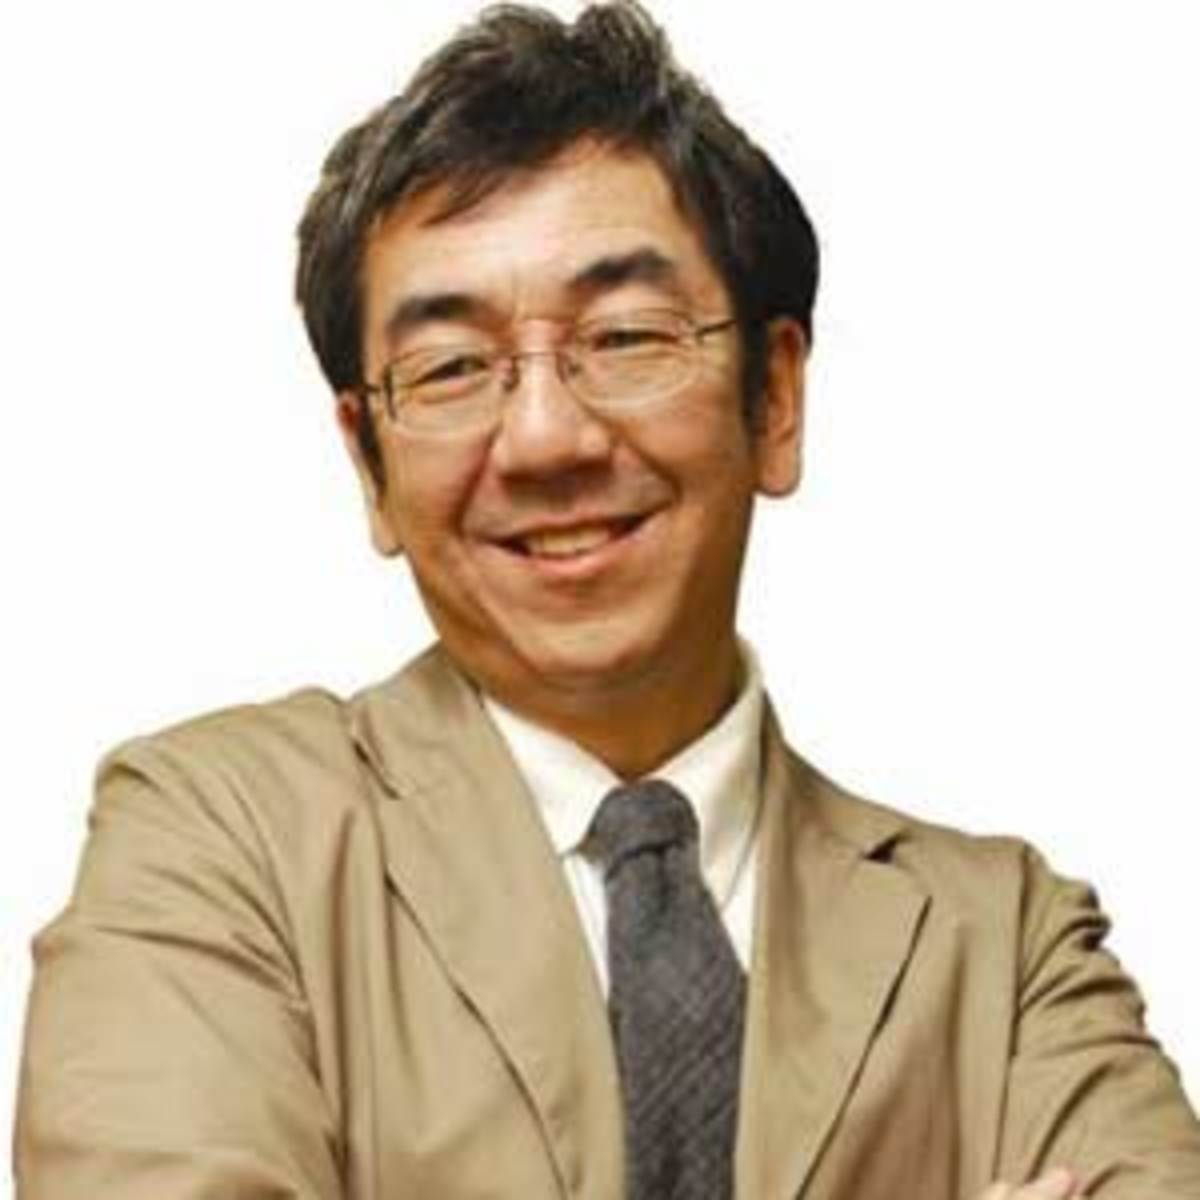 Chip Tsao, the Hong Kong based columnist accused of racism.